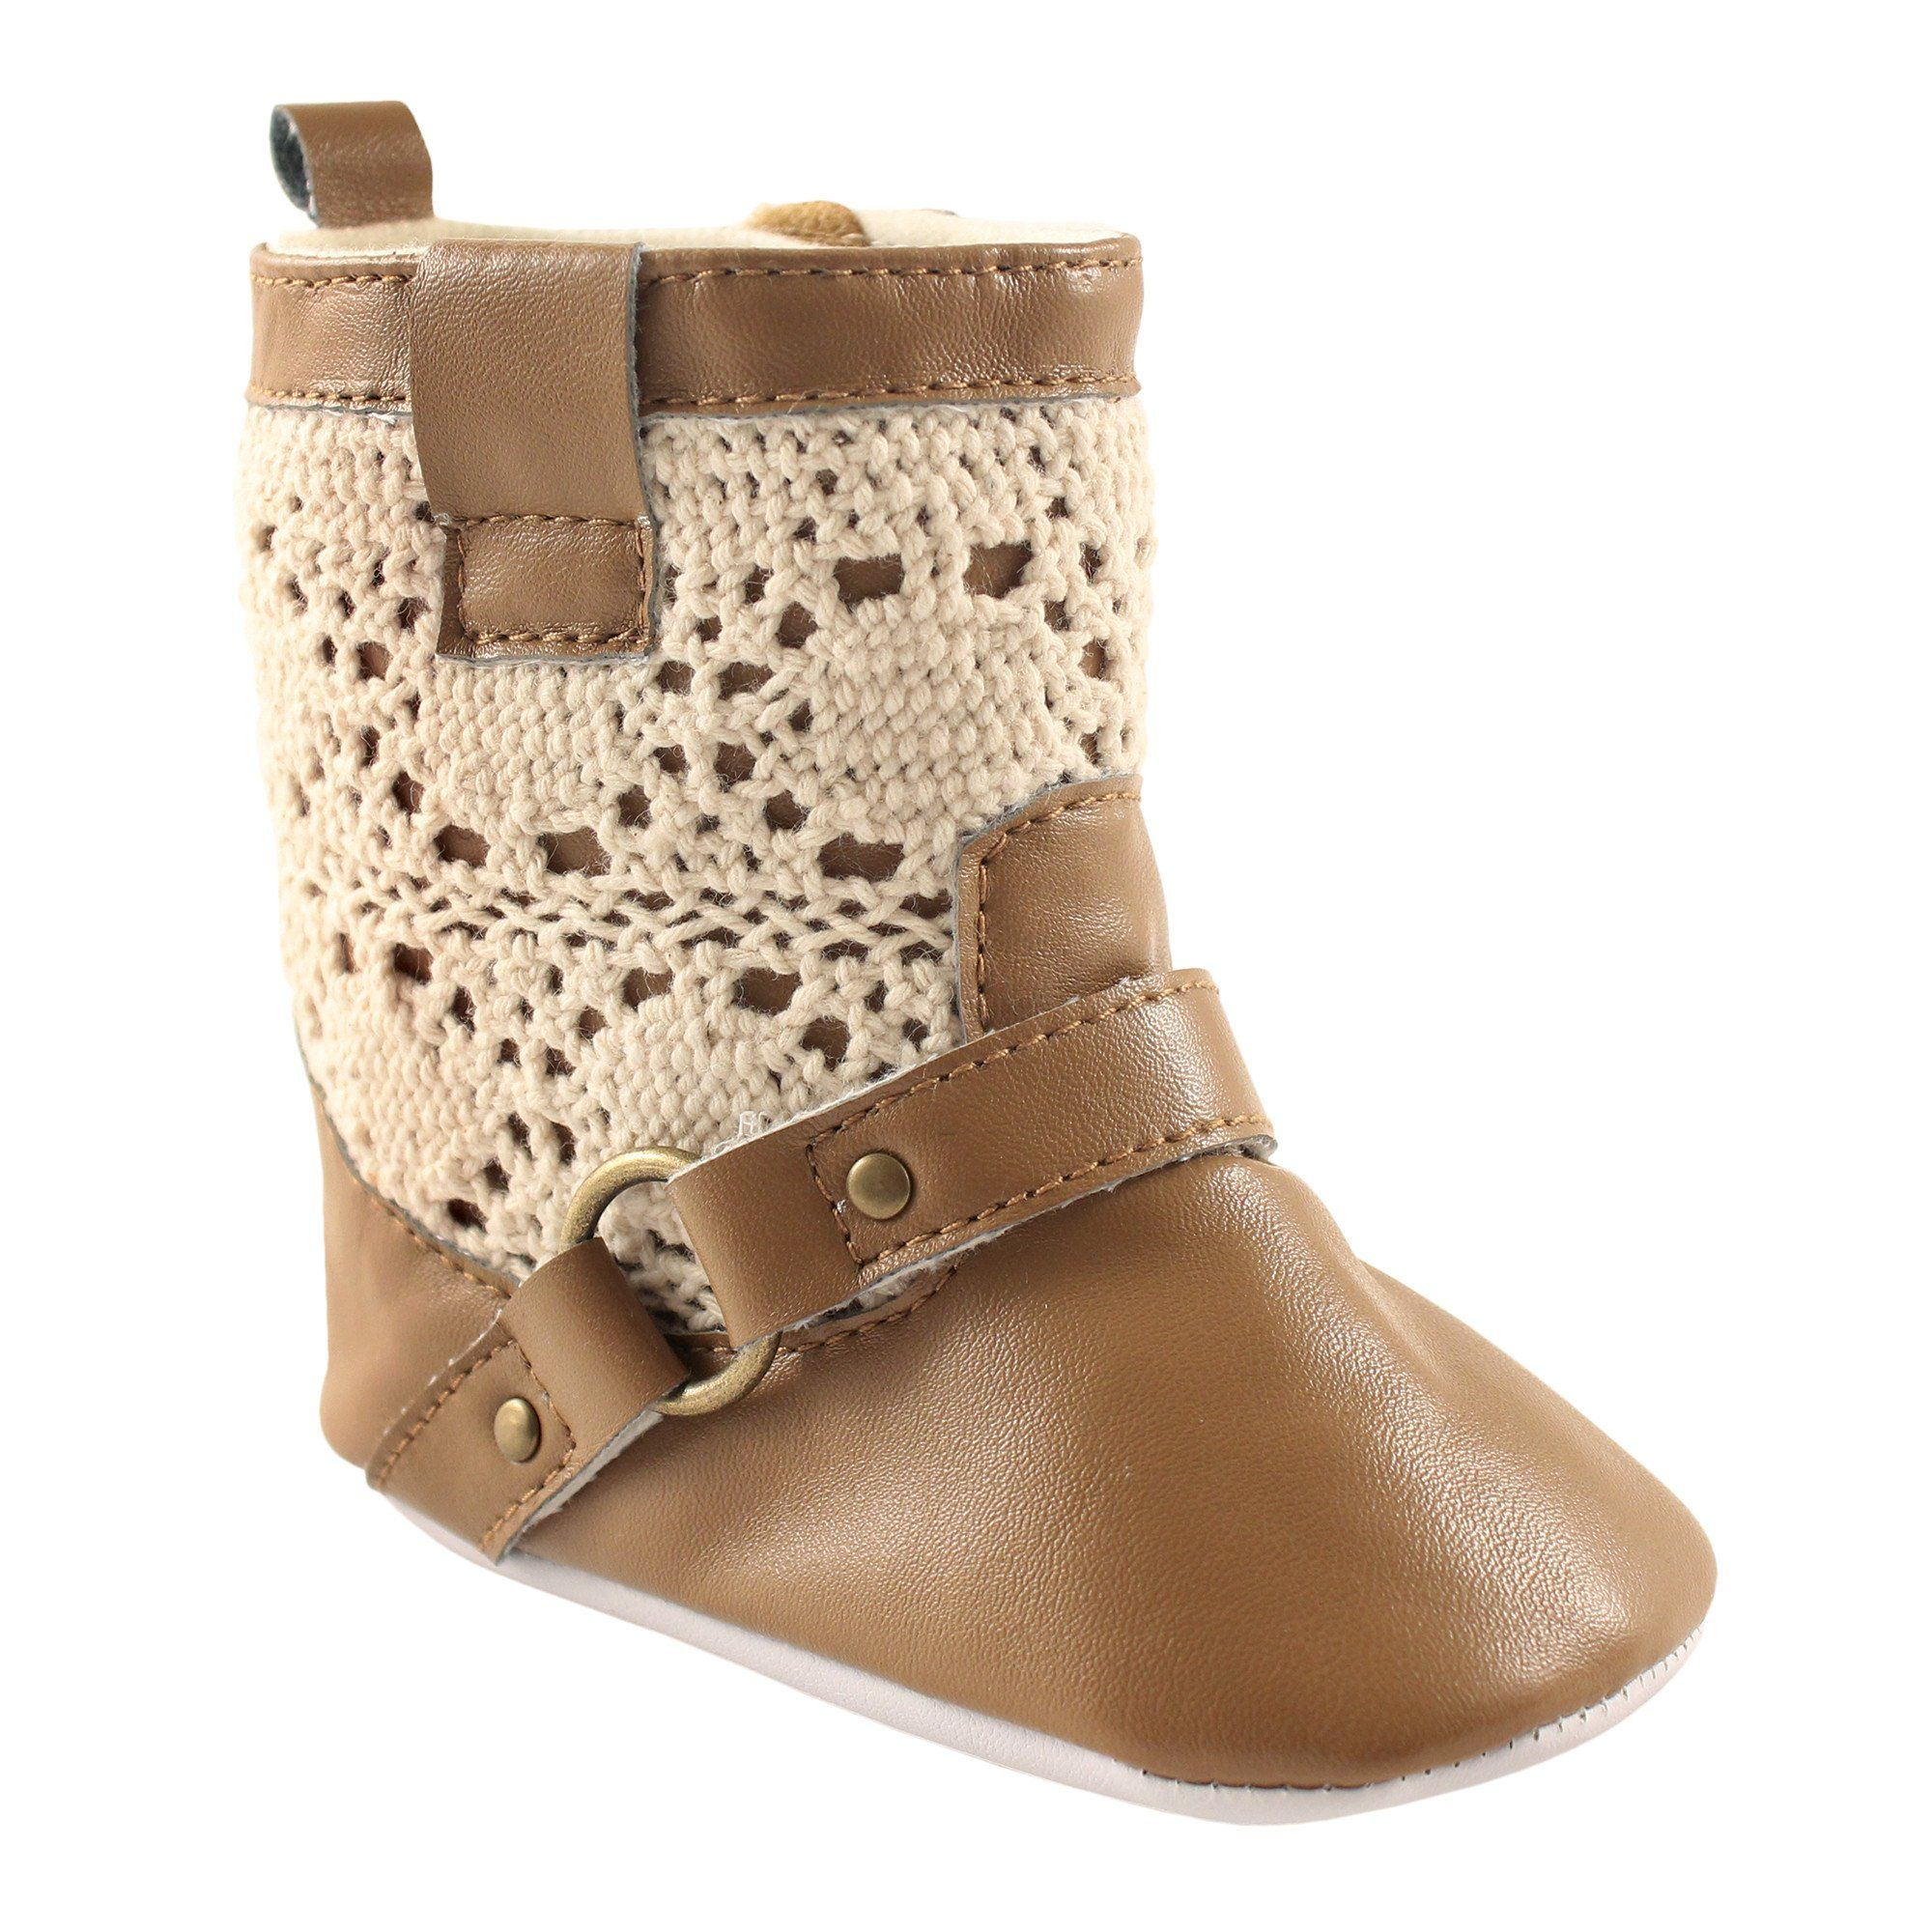 Luvable friends girlsu crochet lace boot tan months m us